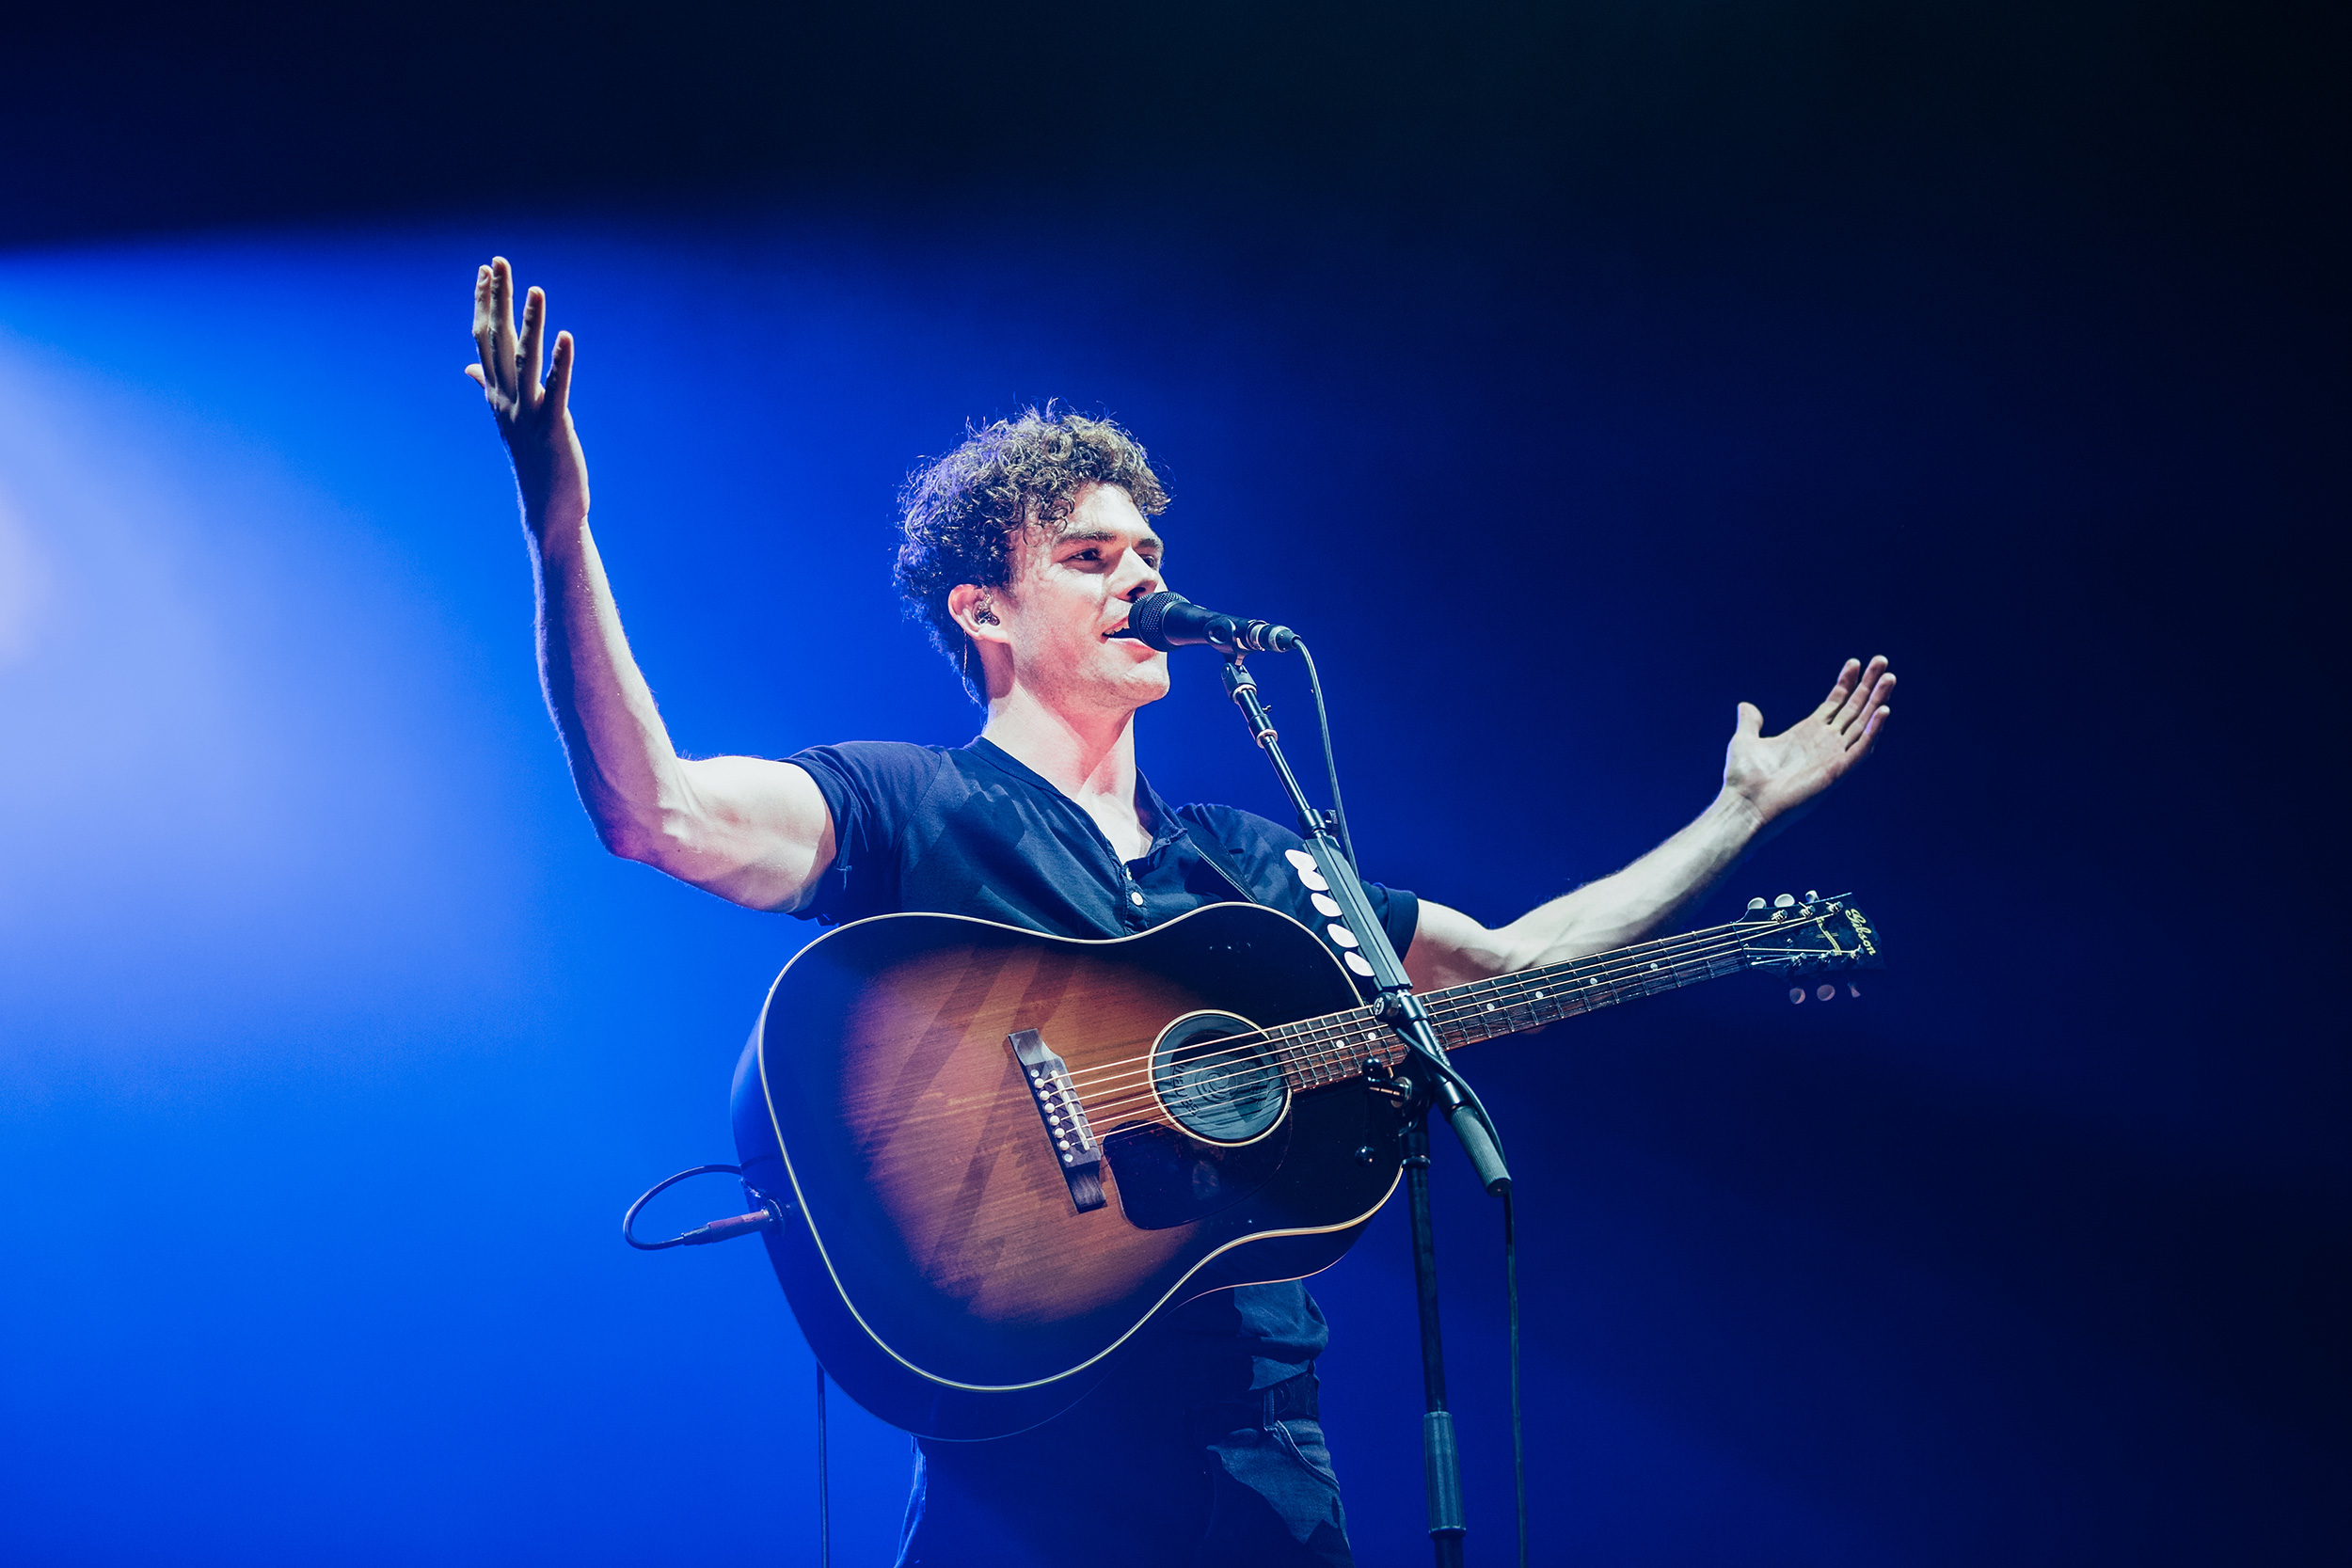 Vance_Joy_131118_Communion-(36-of-64).jpg